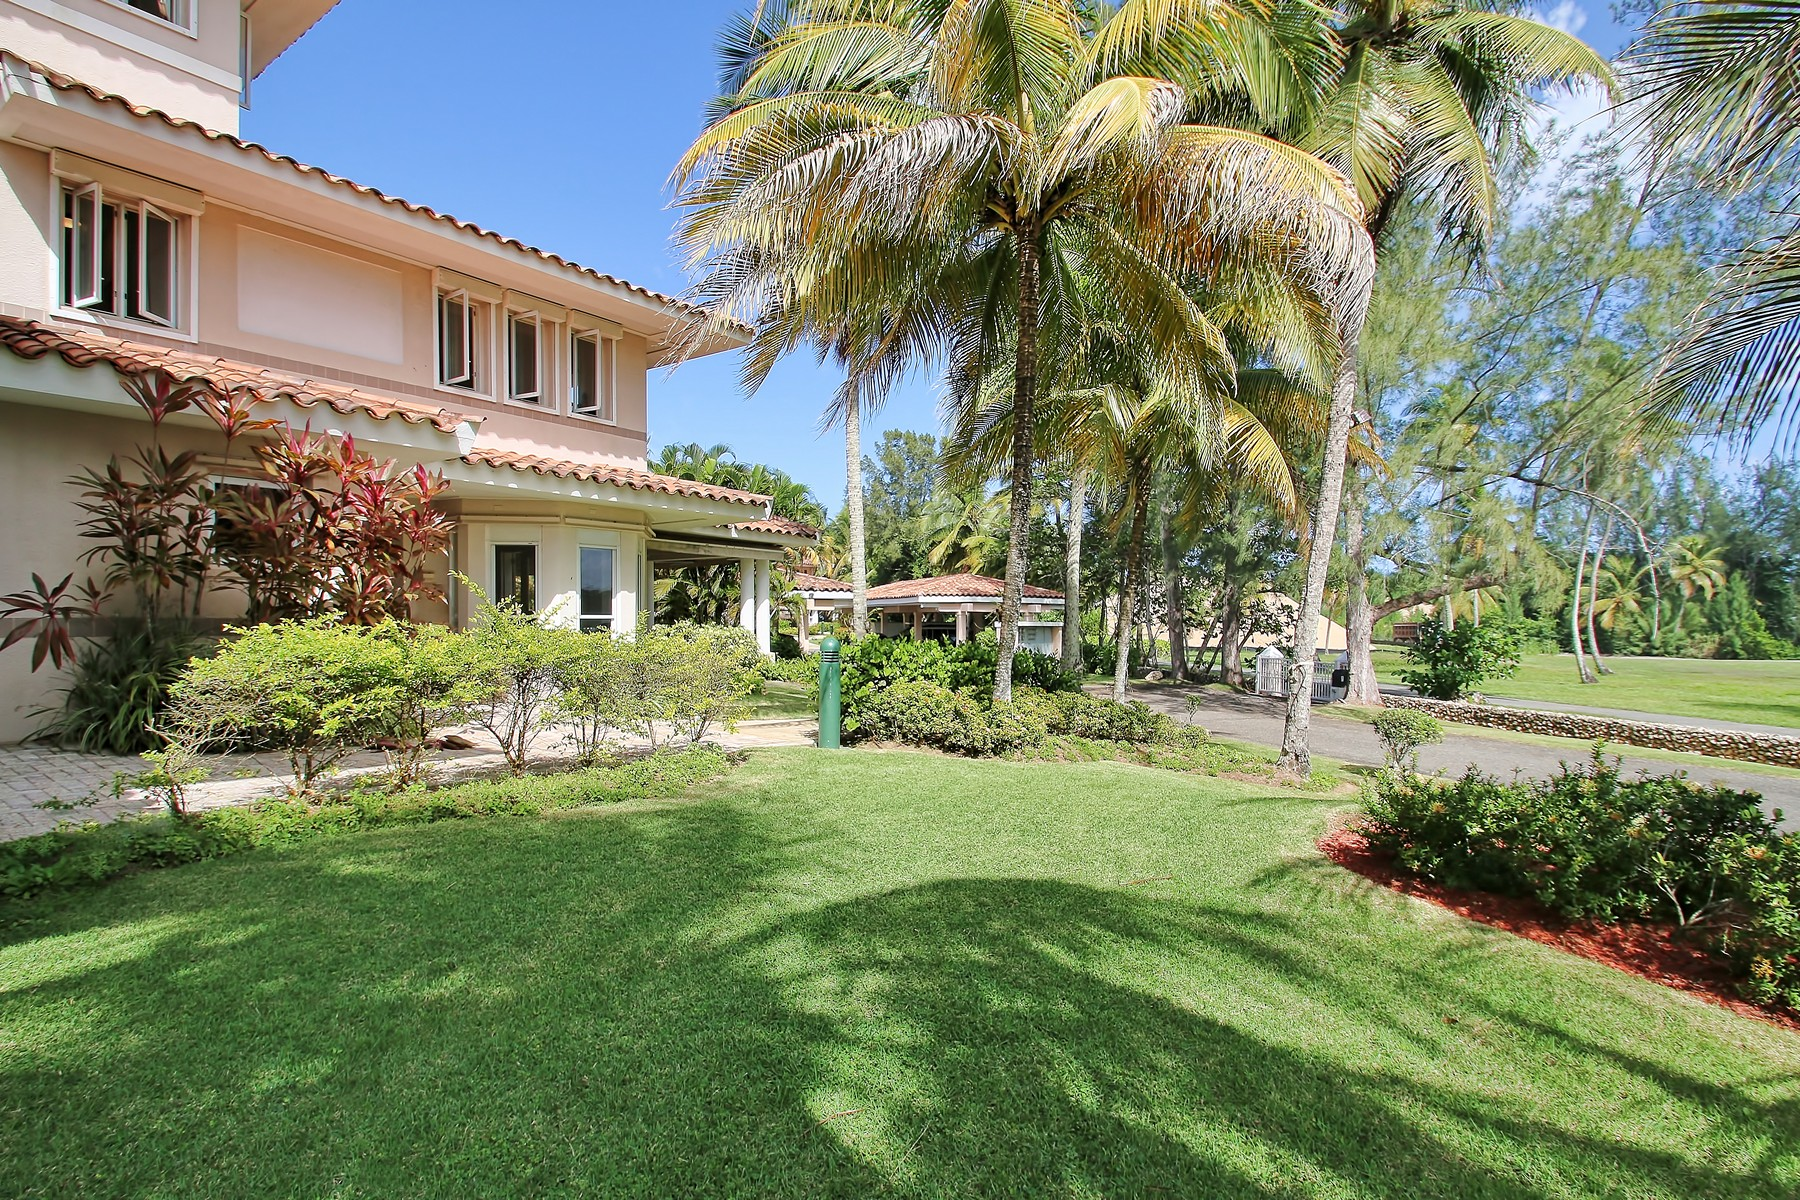 Townhouse for Sale at Waterfront at The Cottages Dorado Beach 7 Dorado Beach Cottages Dorado, 00646 Puerto Rico